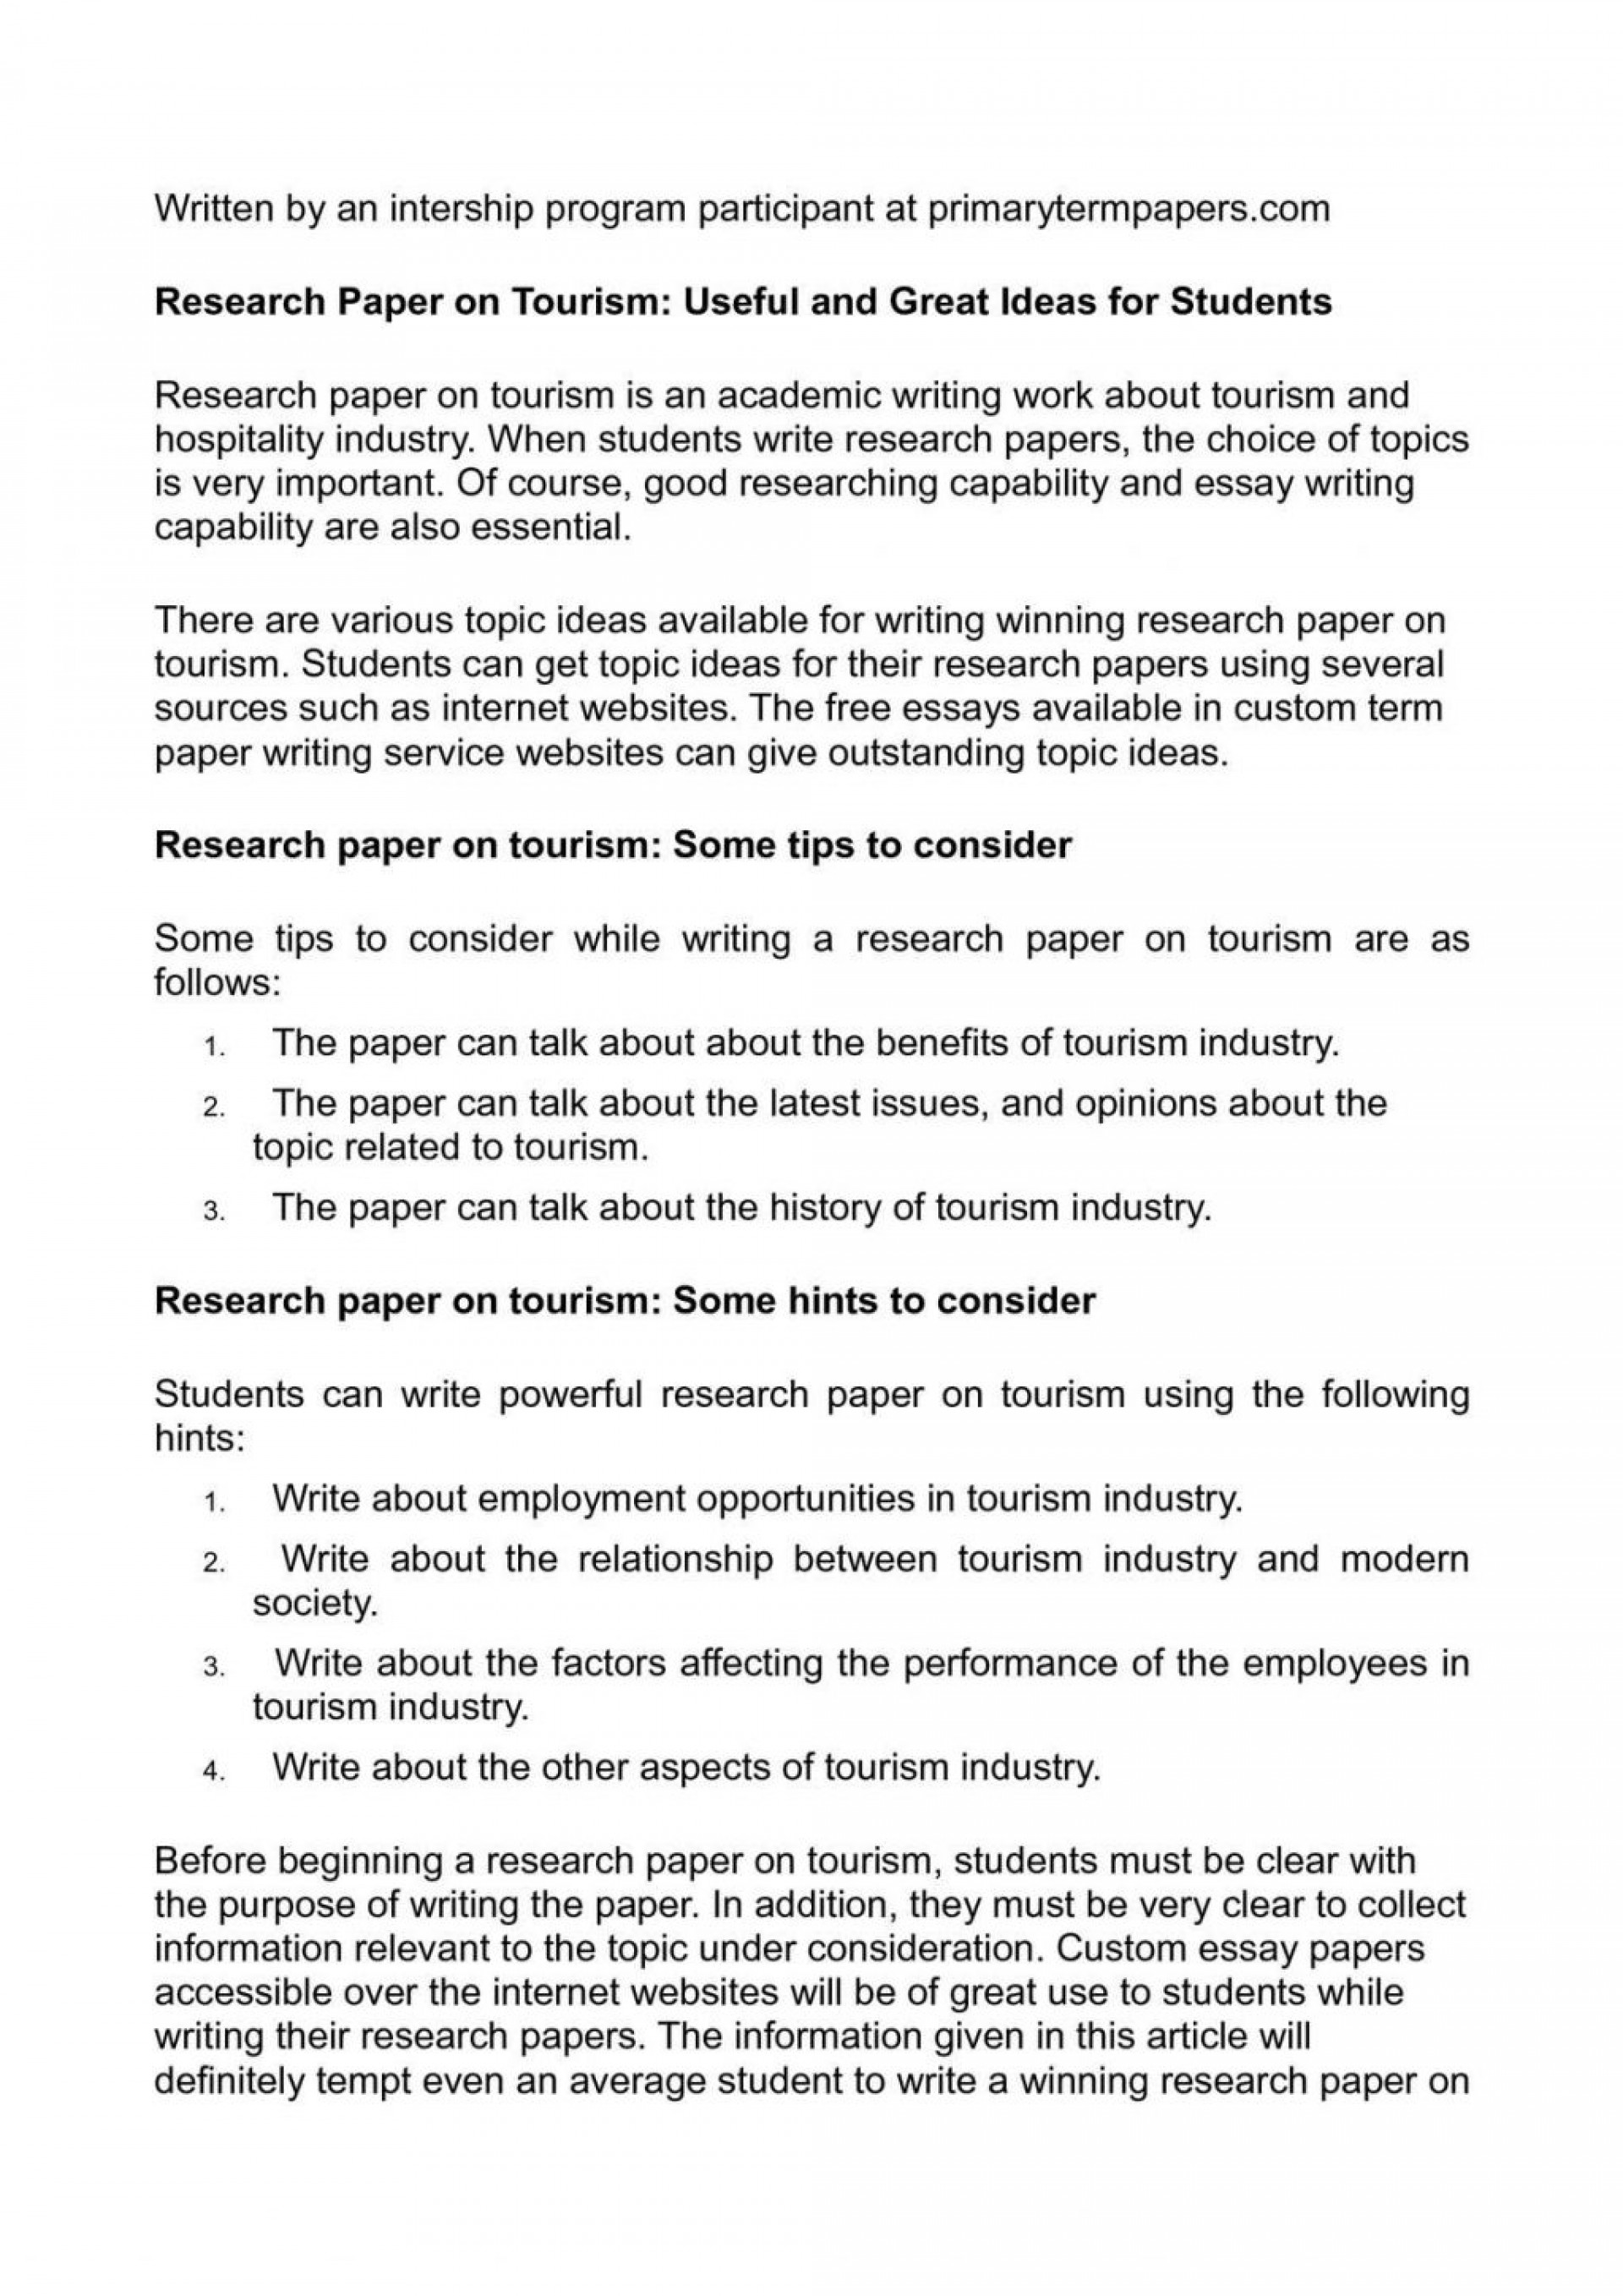 023 Research Paper 20calama20c220a9o On Tourism Useful And Great Ideas For Students Topics To Write About20 1024x1449 Sensational Health Related Public 1920